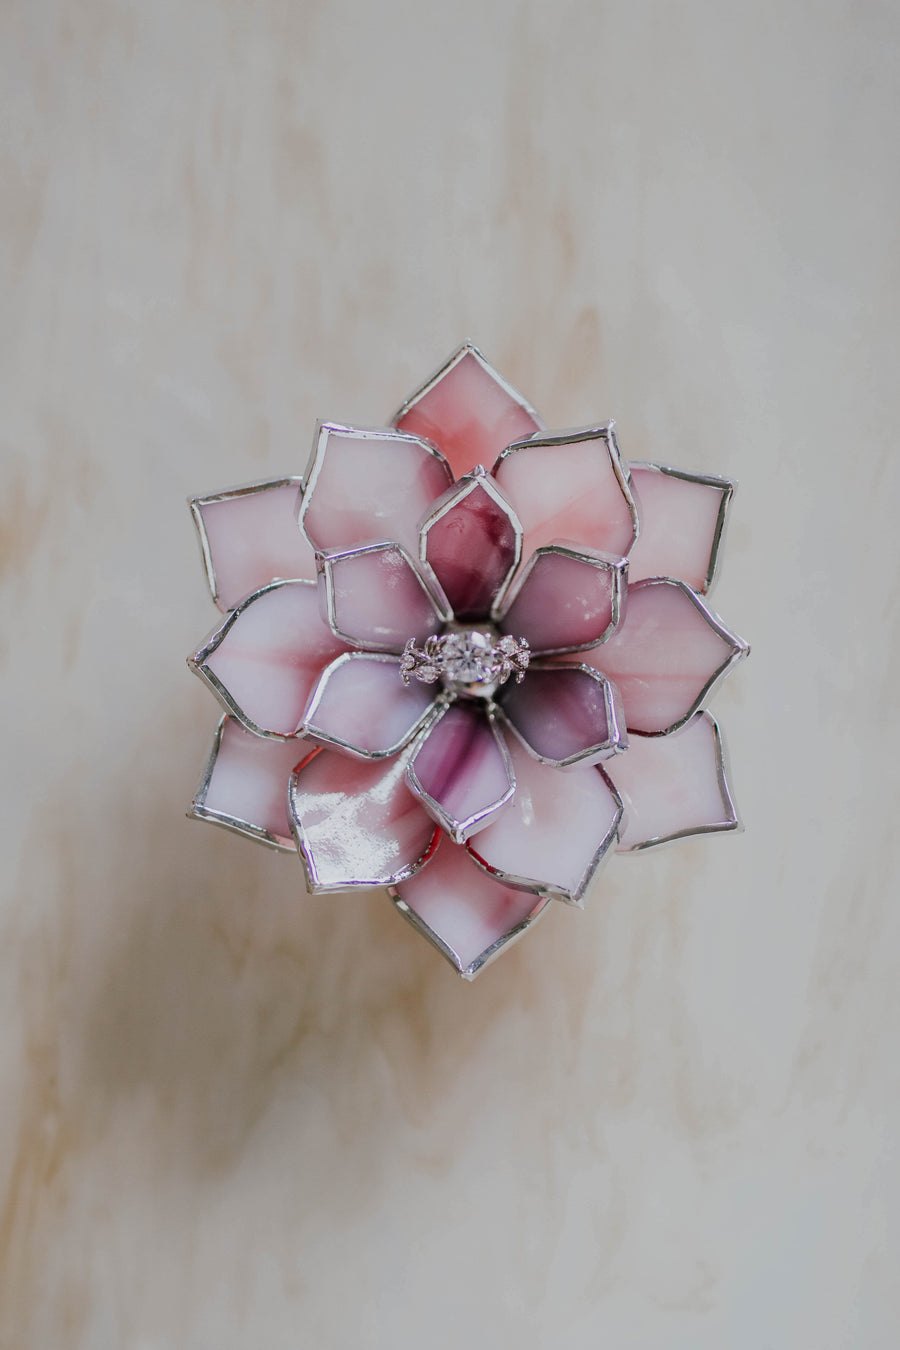 stained-glass-pink-magnolia-ring-dish-by-waen